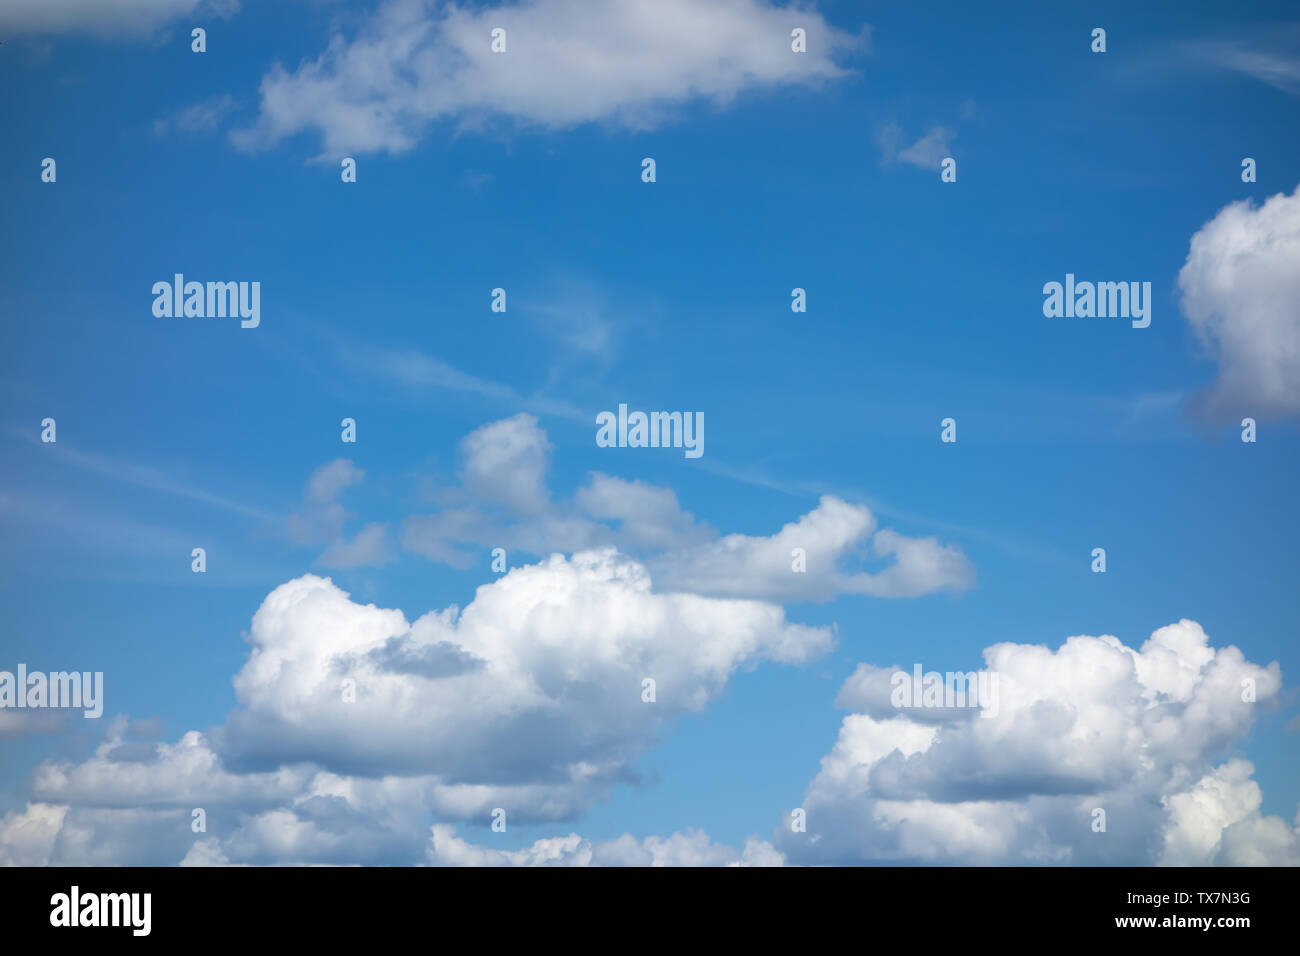 blue sky with flying white light clouds - Stock Image